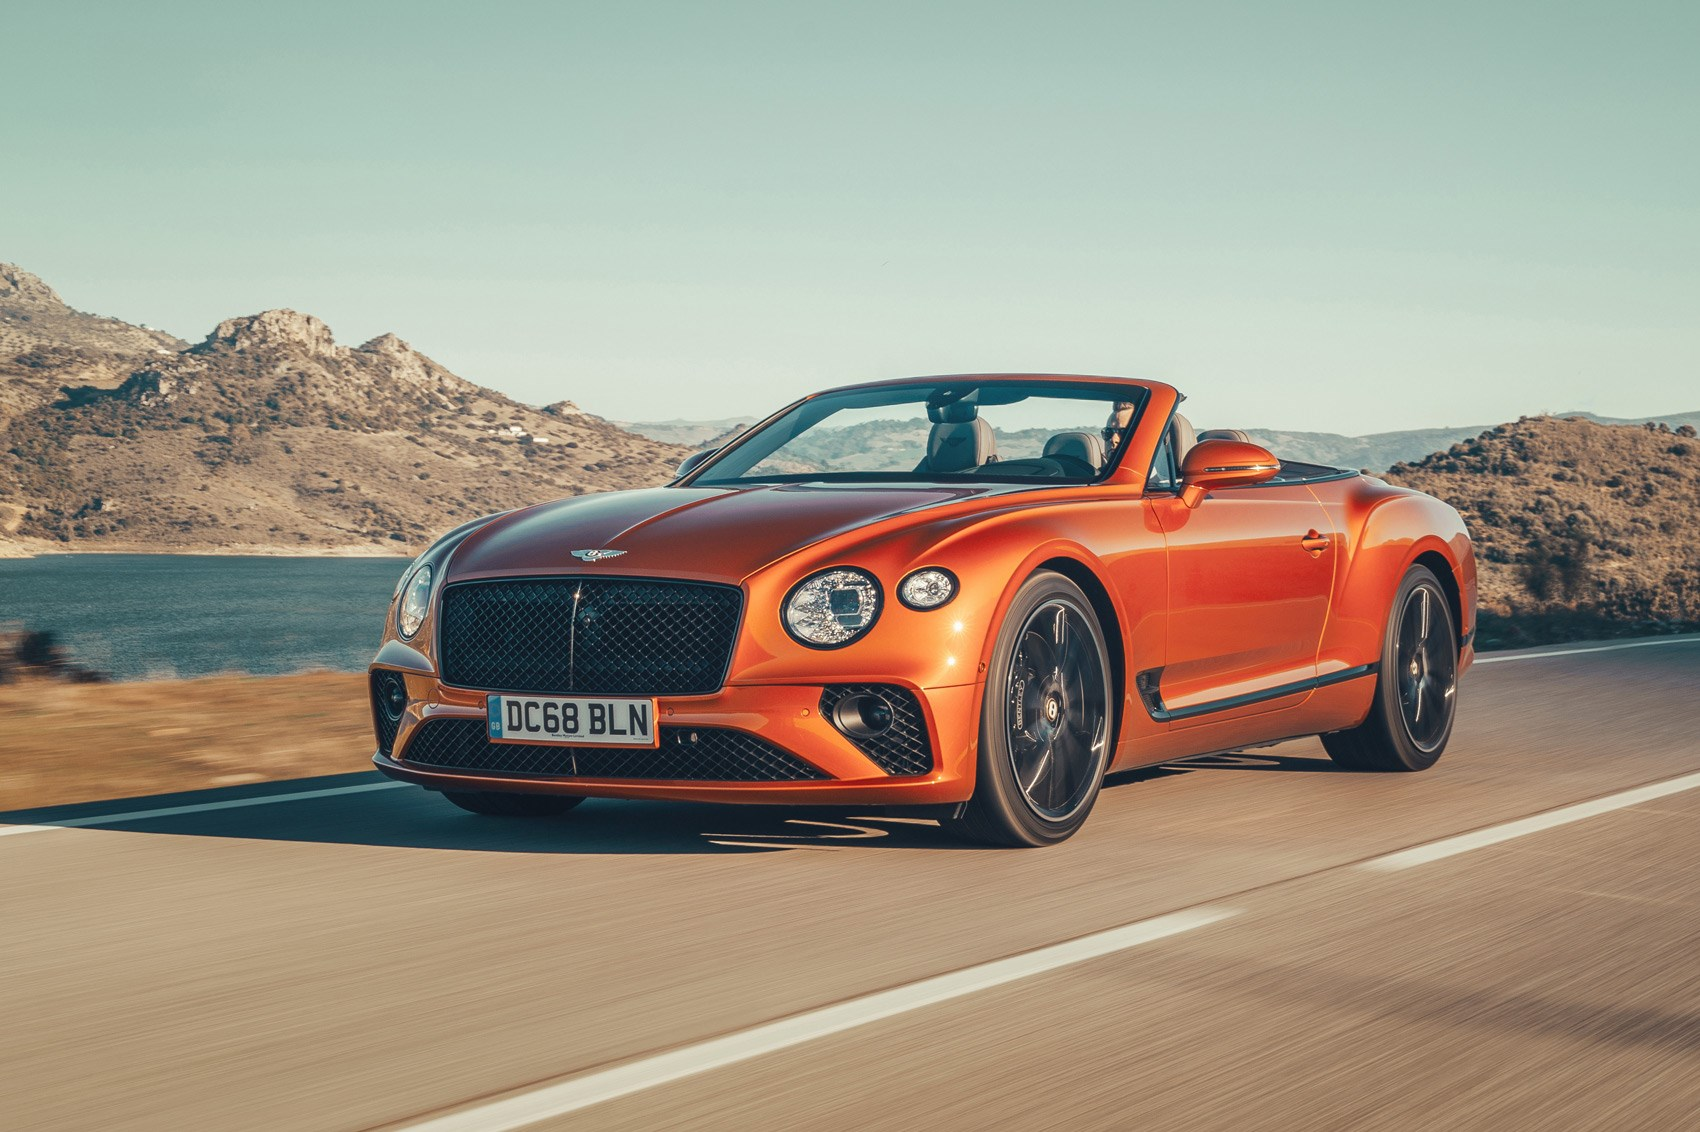 Bentley Continental Gt Convertible 2019 Review The Last Hurrah Car Magazine